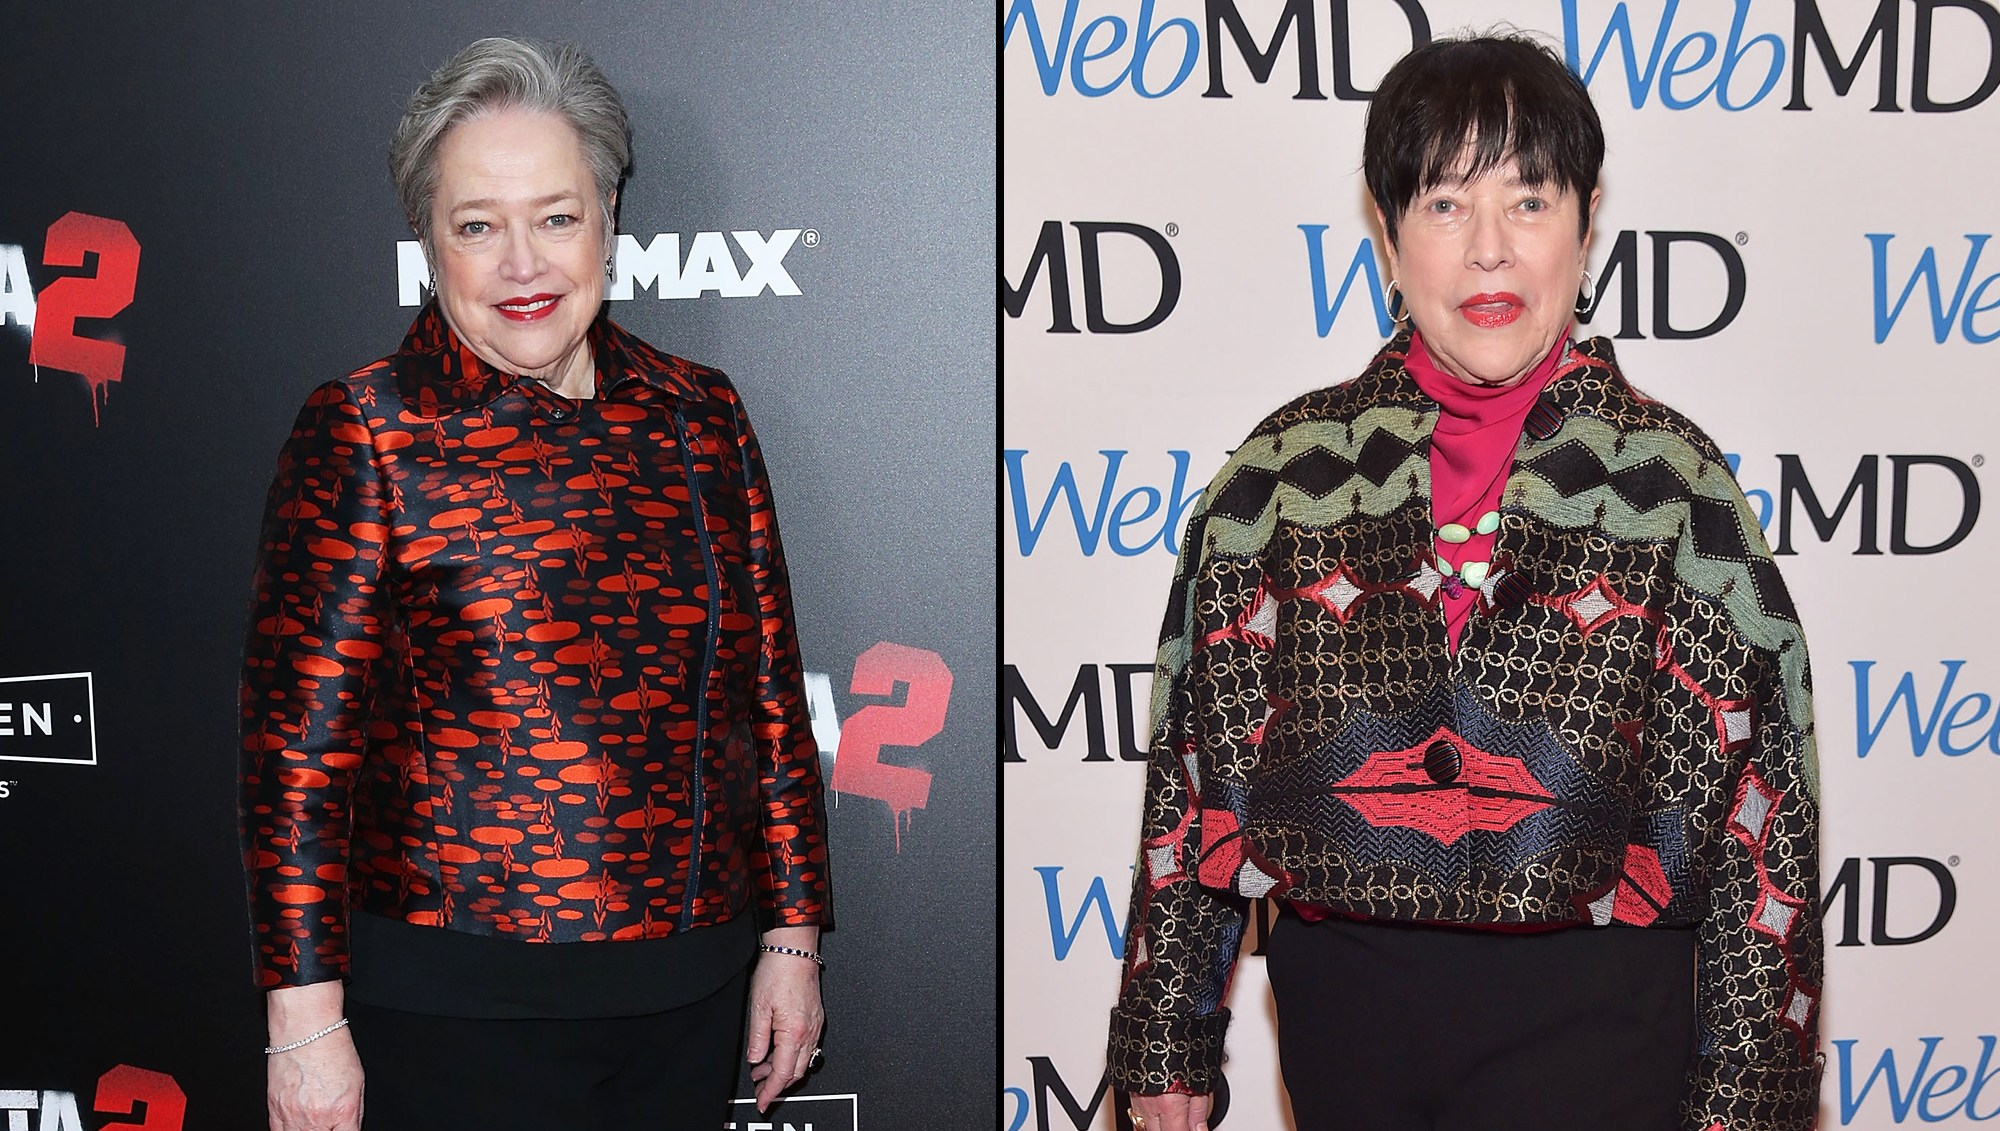 Kathy Bates on Losing 60 Pounds